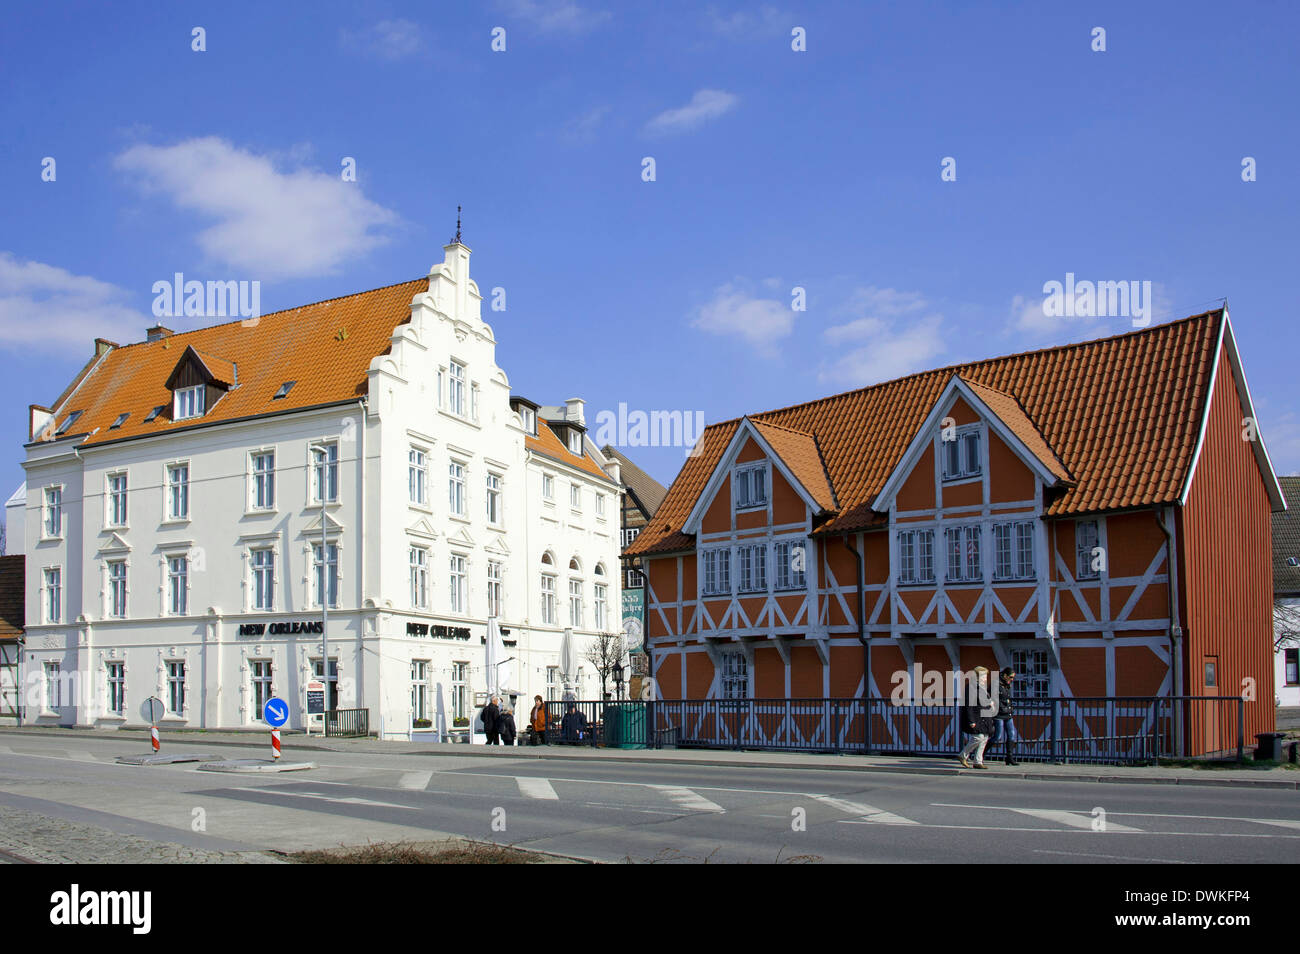 Hotel New Orleans and Gewolbe, Wismar - Stock Image